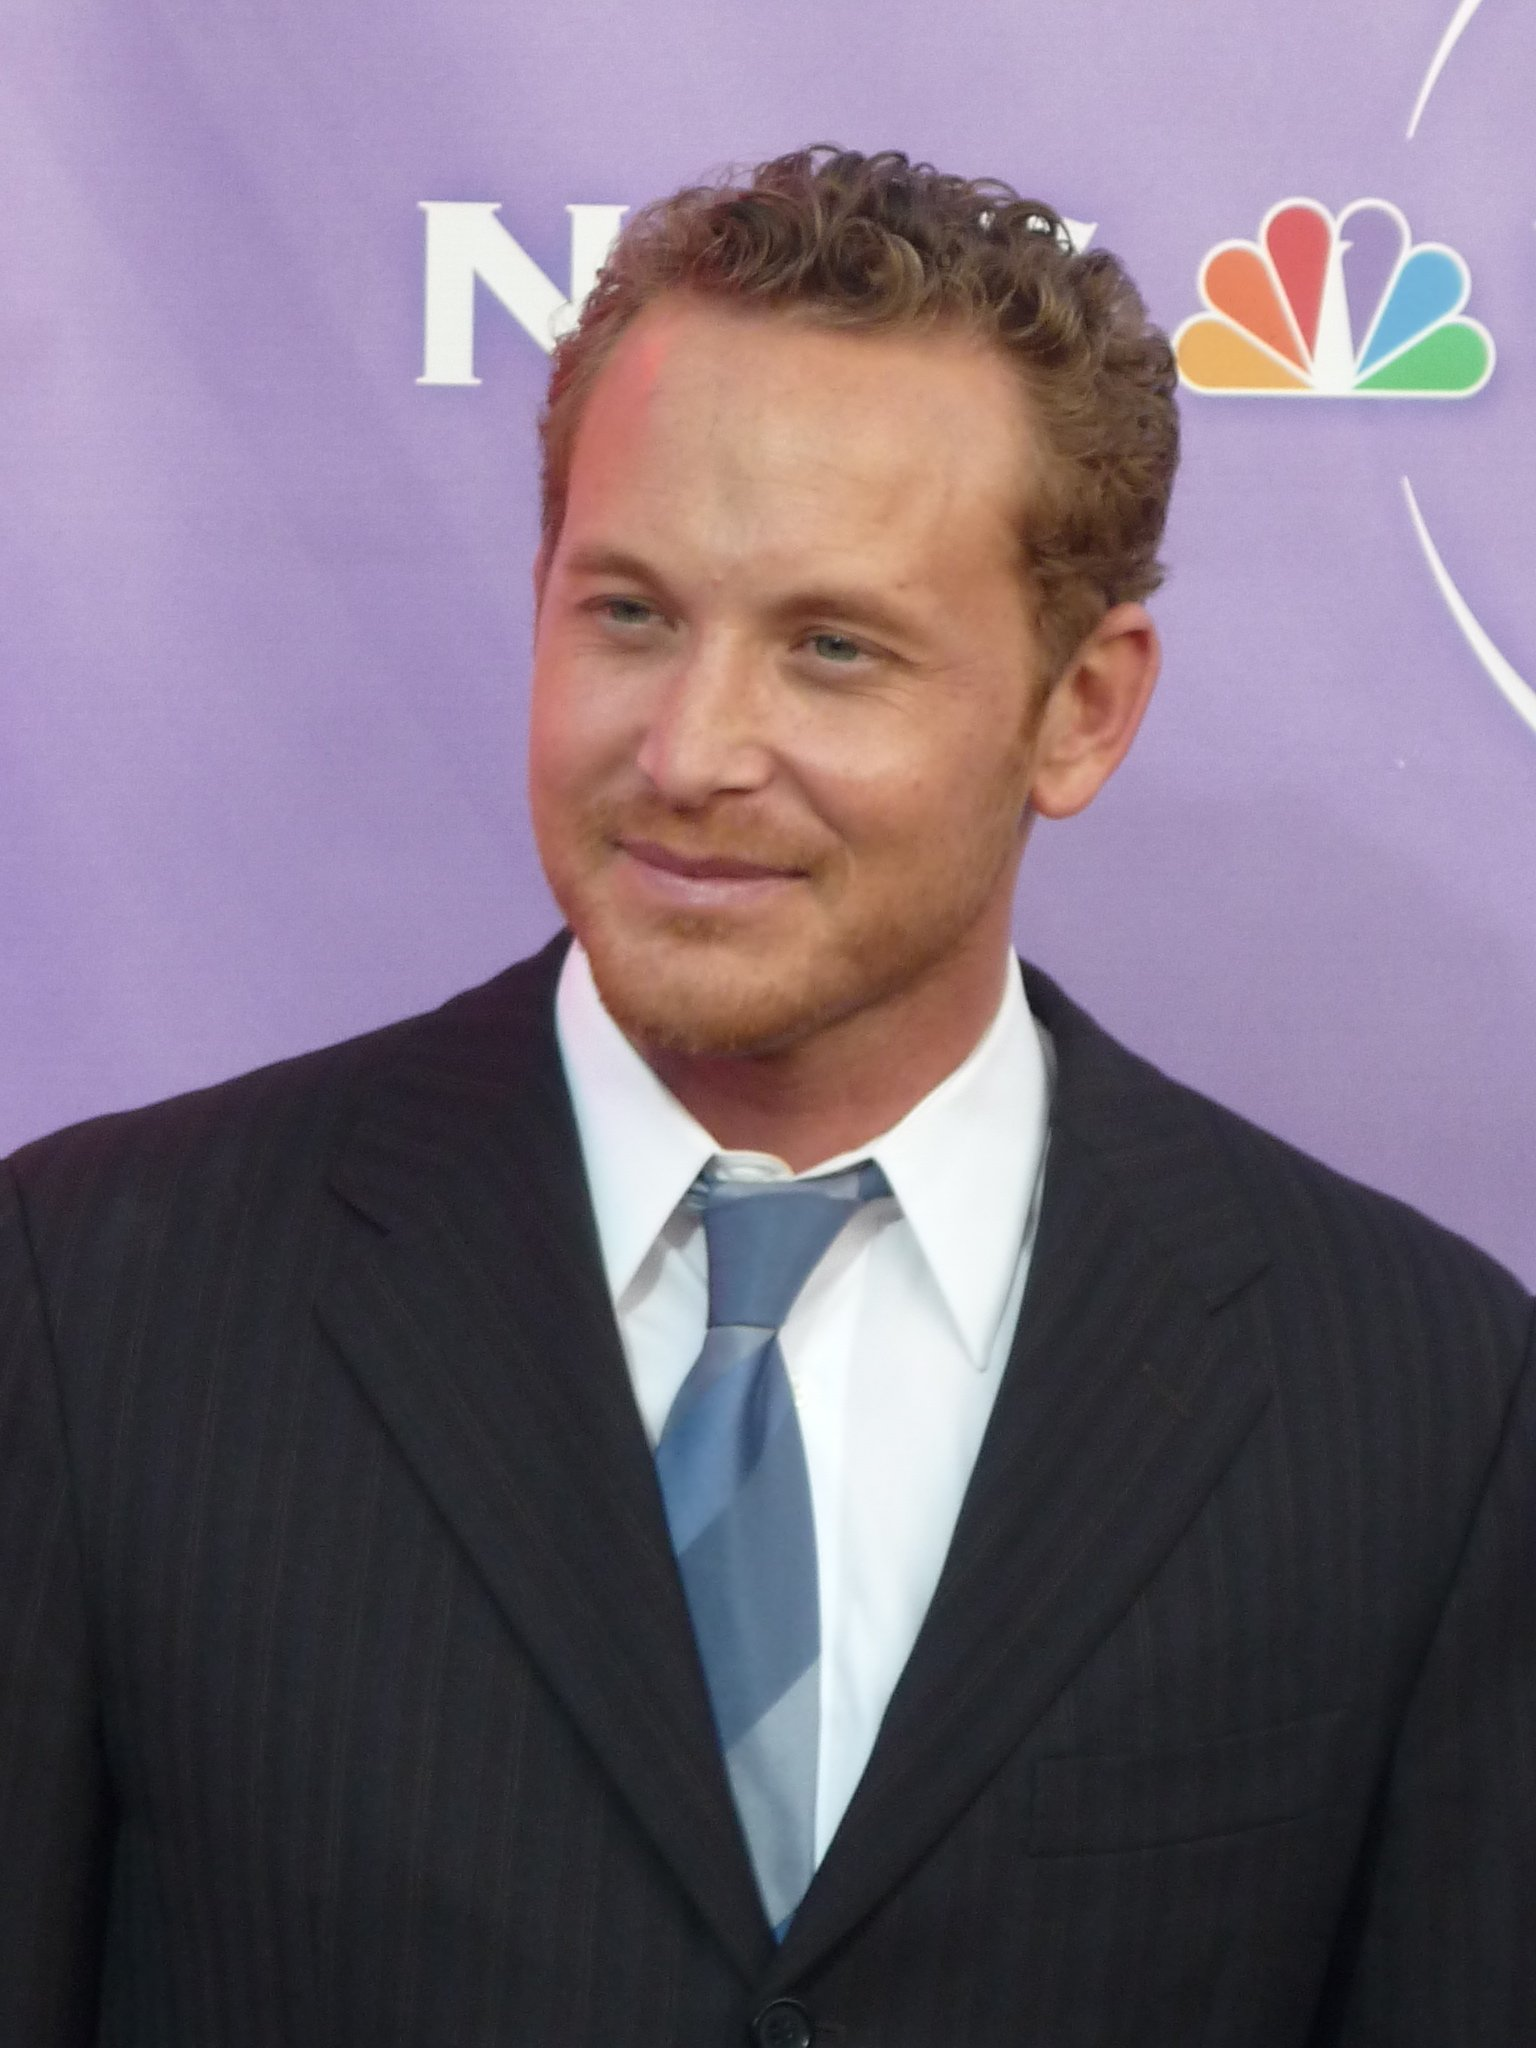 Cole Hauser /CC BY 2.0 / greginhollywood / flickr